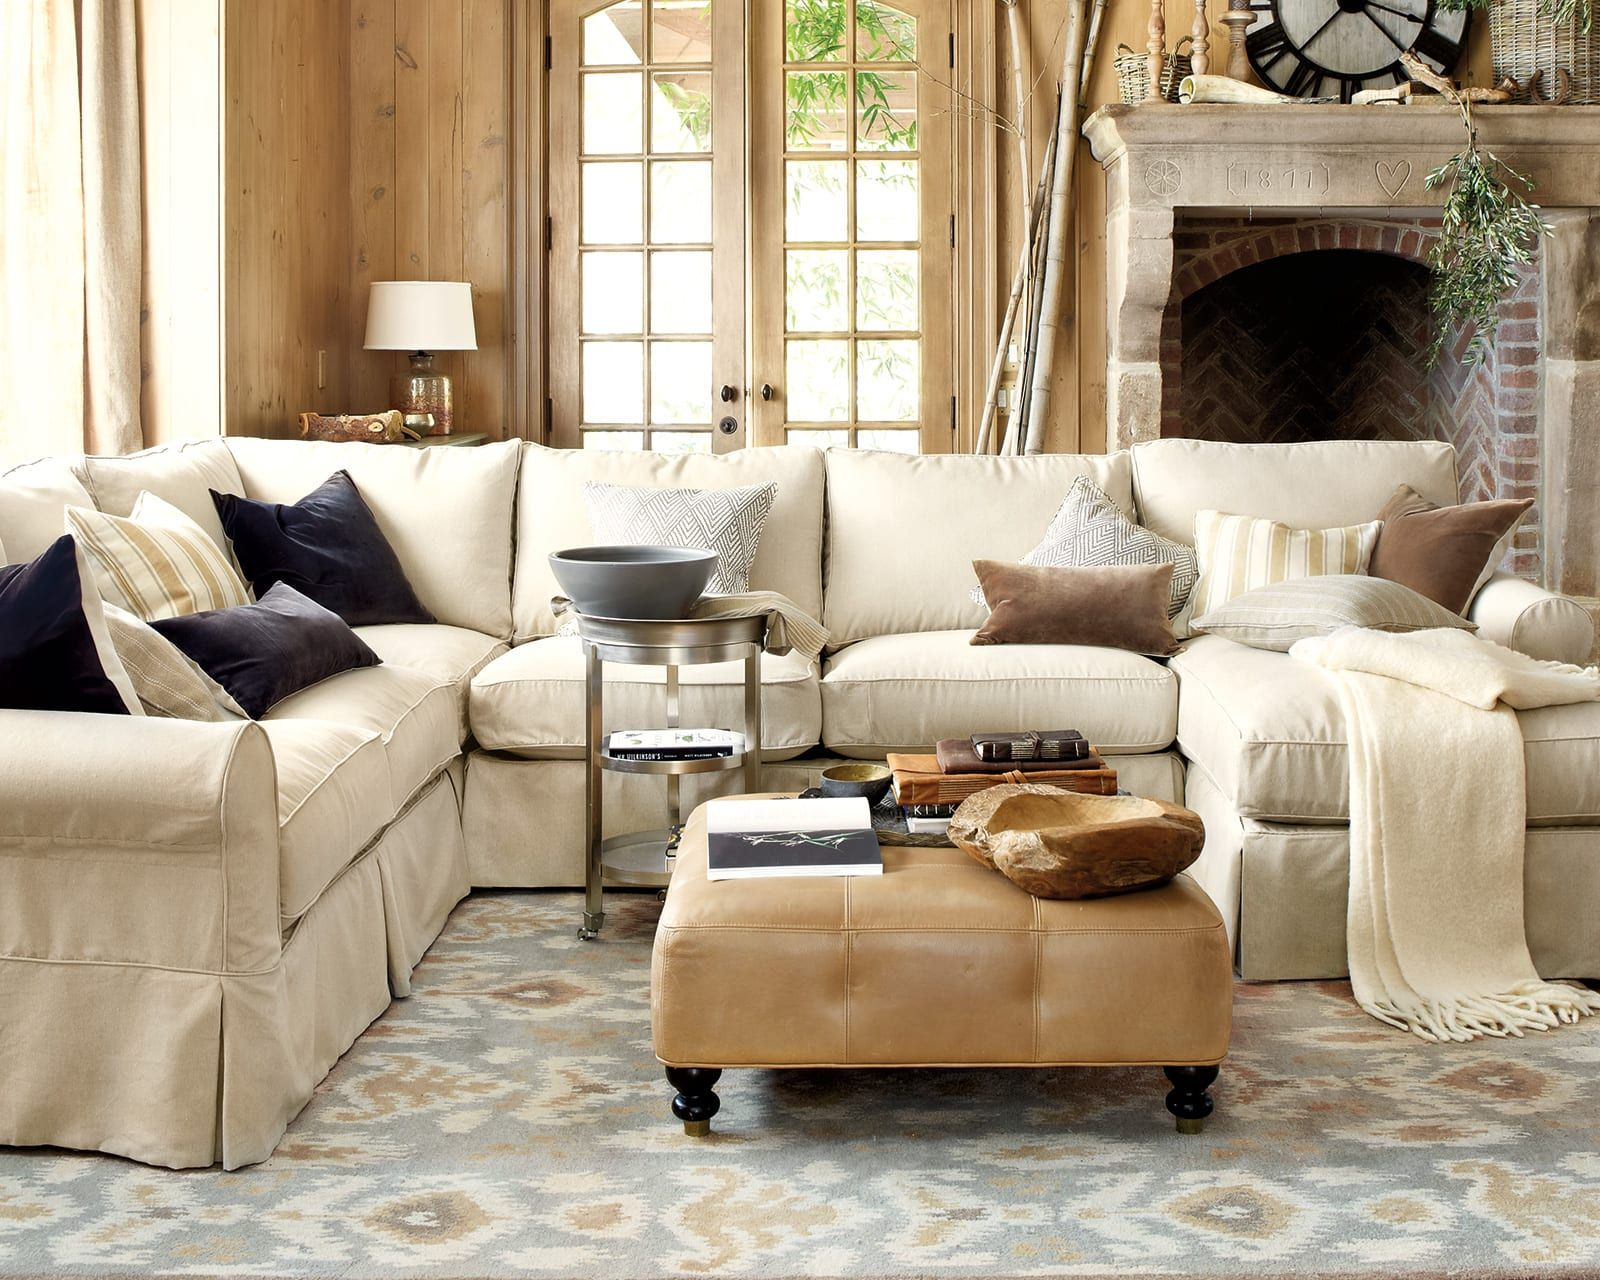 How to Match a Coffee Table to Your Sectional Living